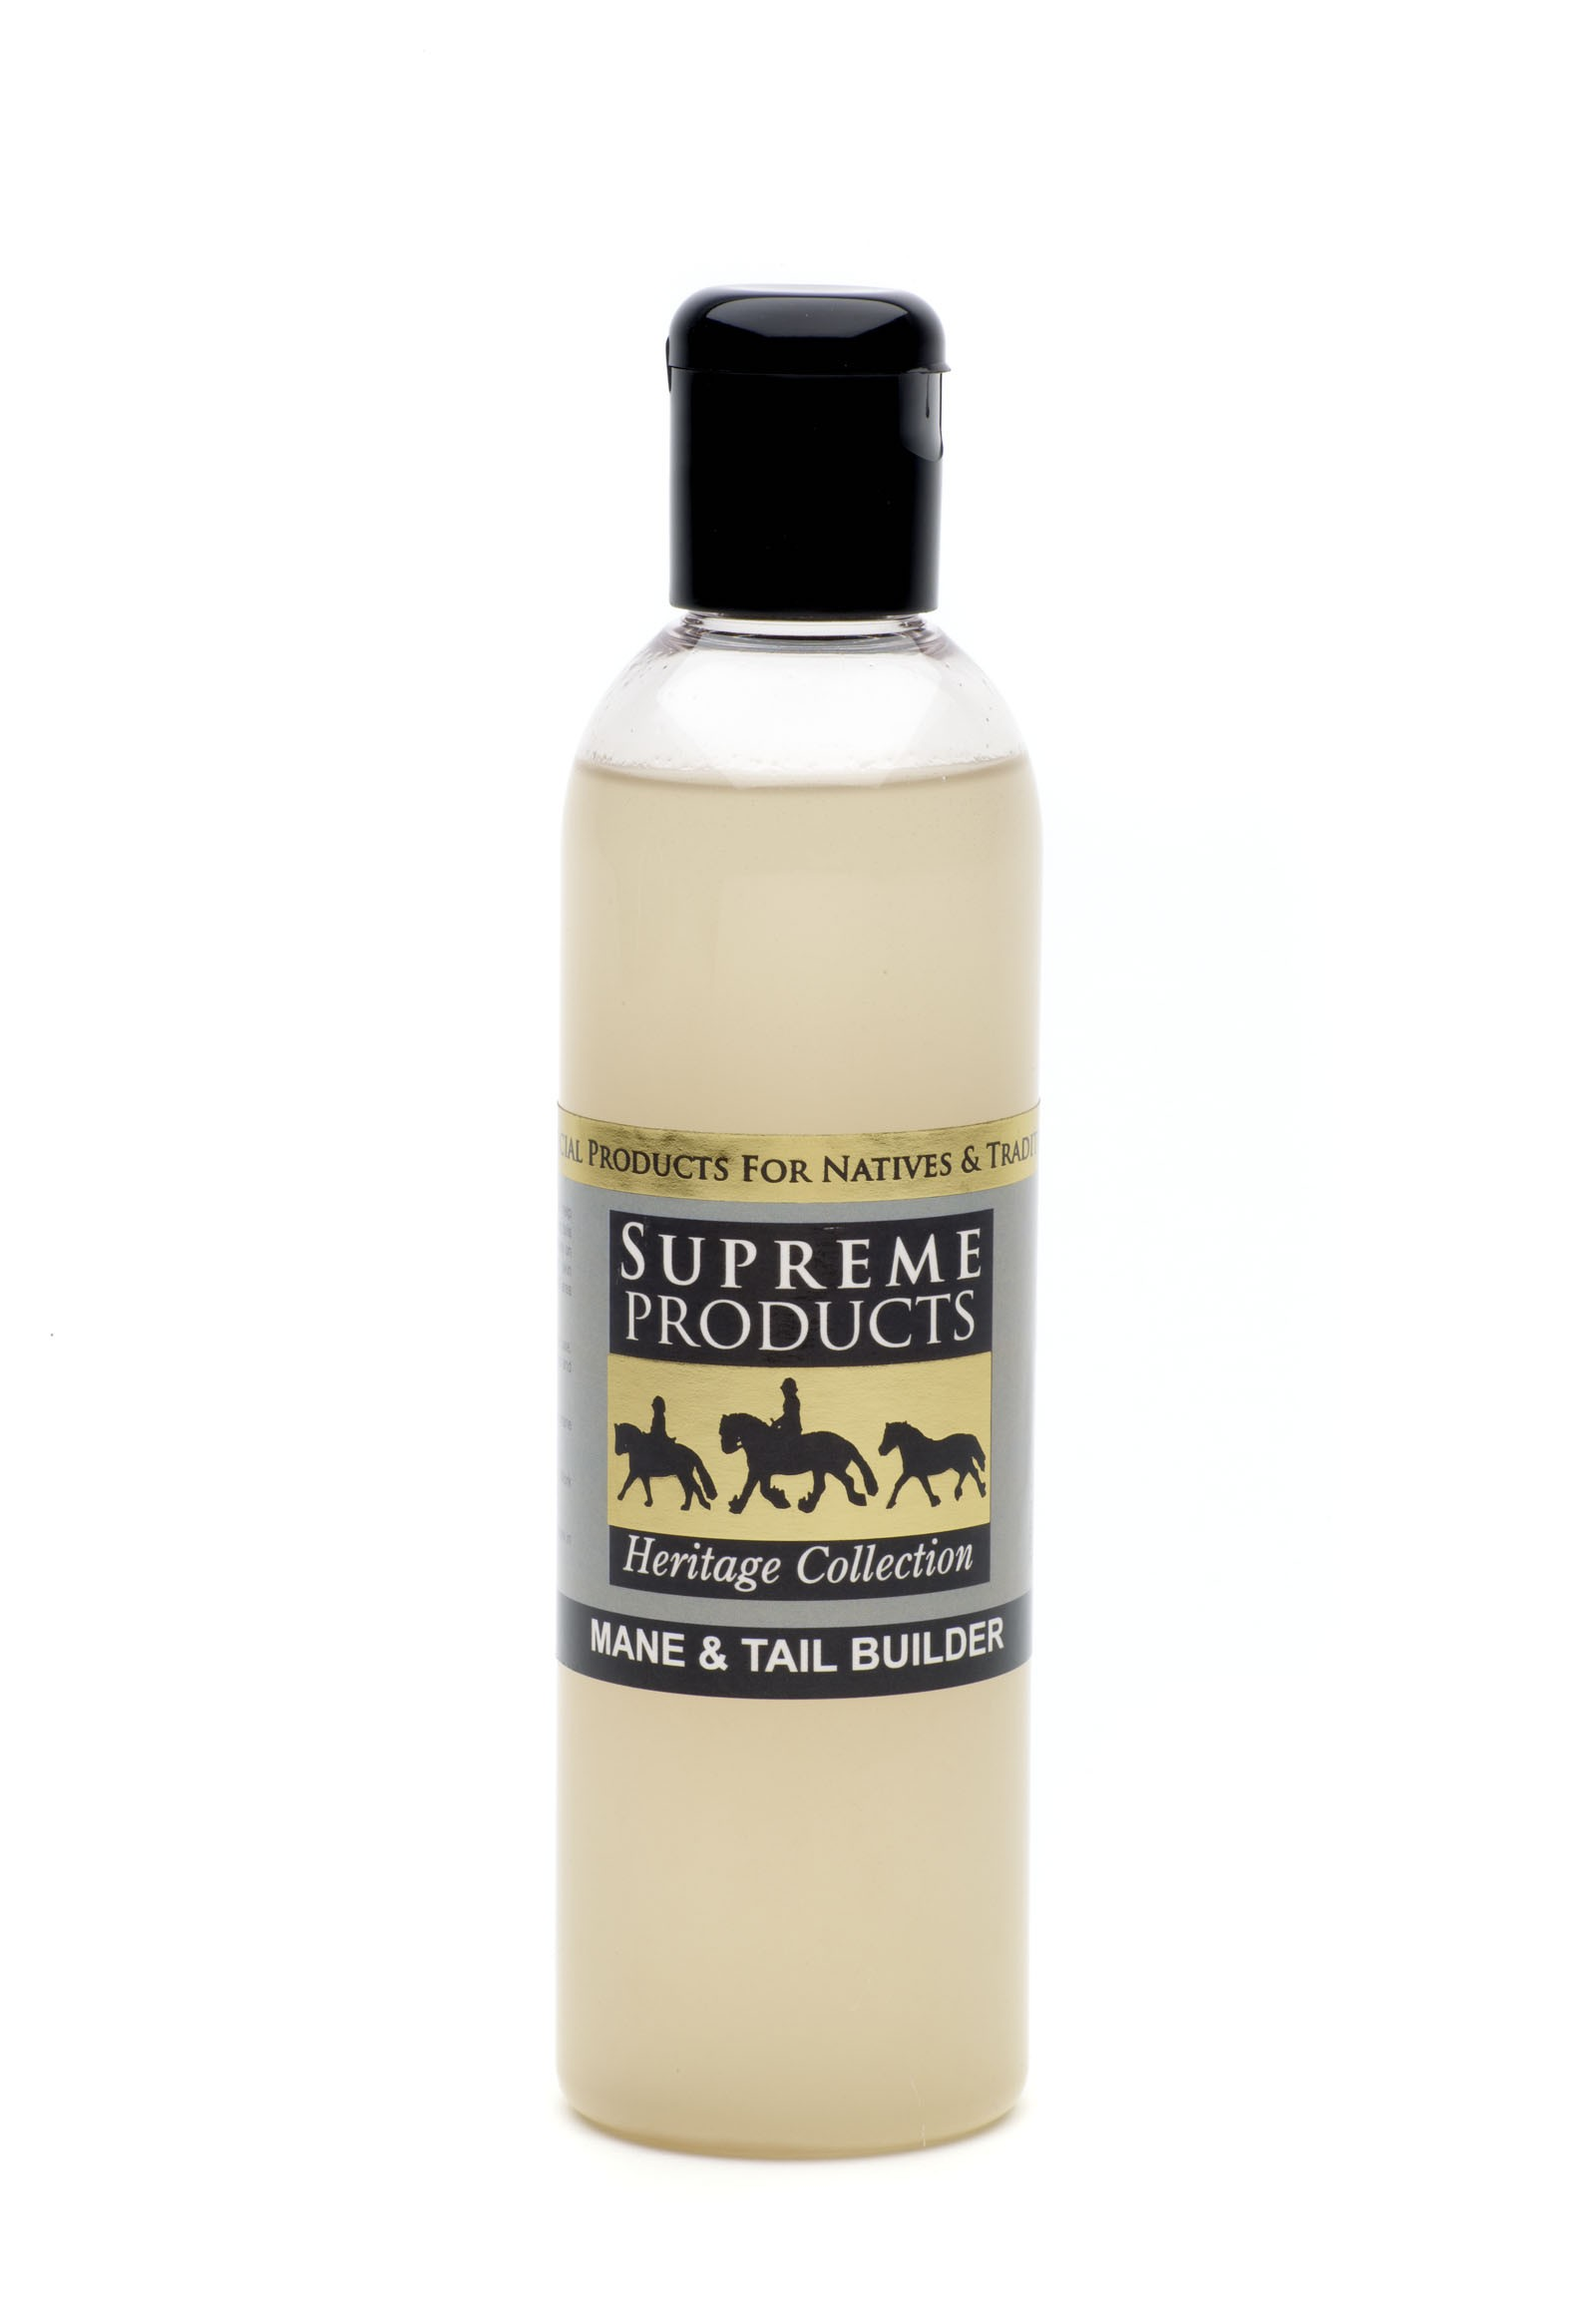 Supreme Products Heritage Collection Mane & Tail Builder  - Thomas Irving's equestrian and accessories store  Supreme Products Heritage Collection Mane & Tail Builder